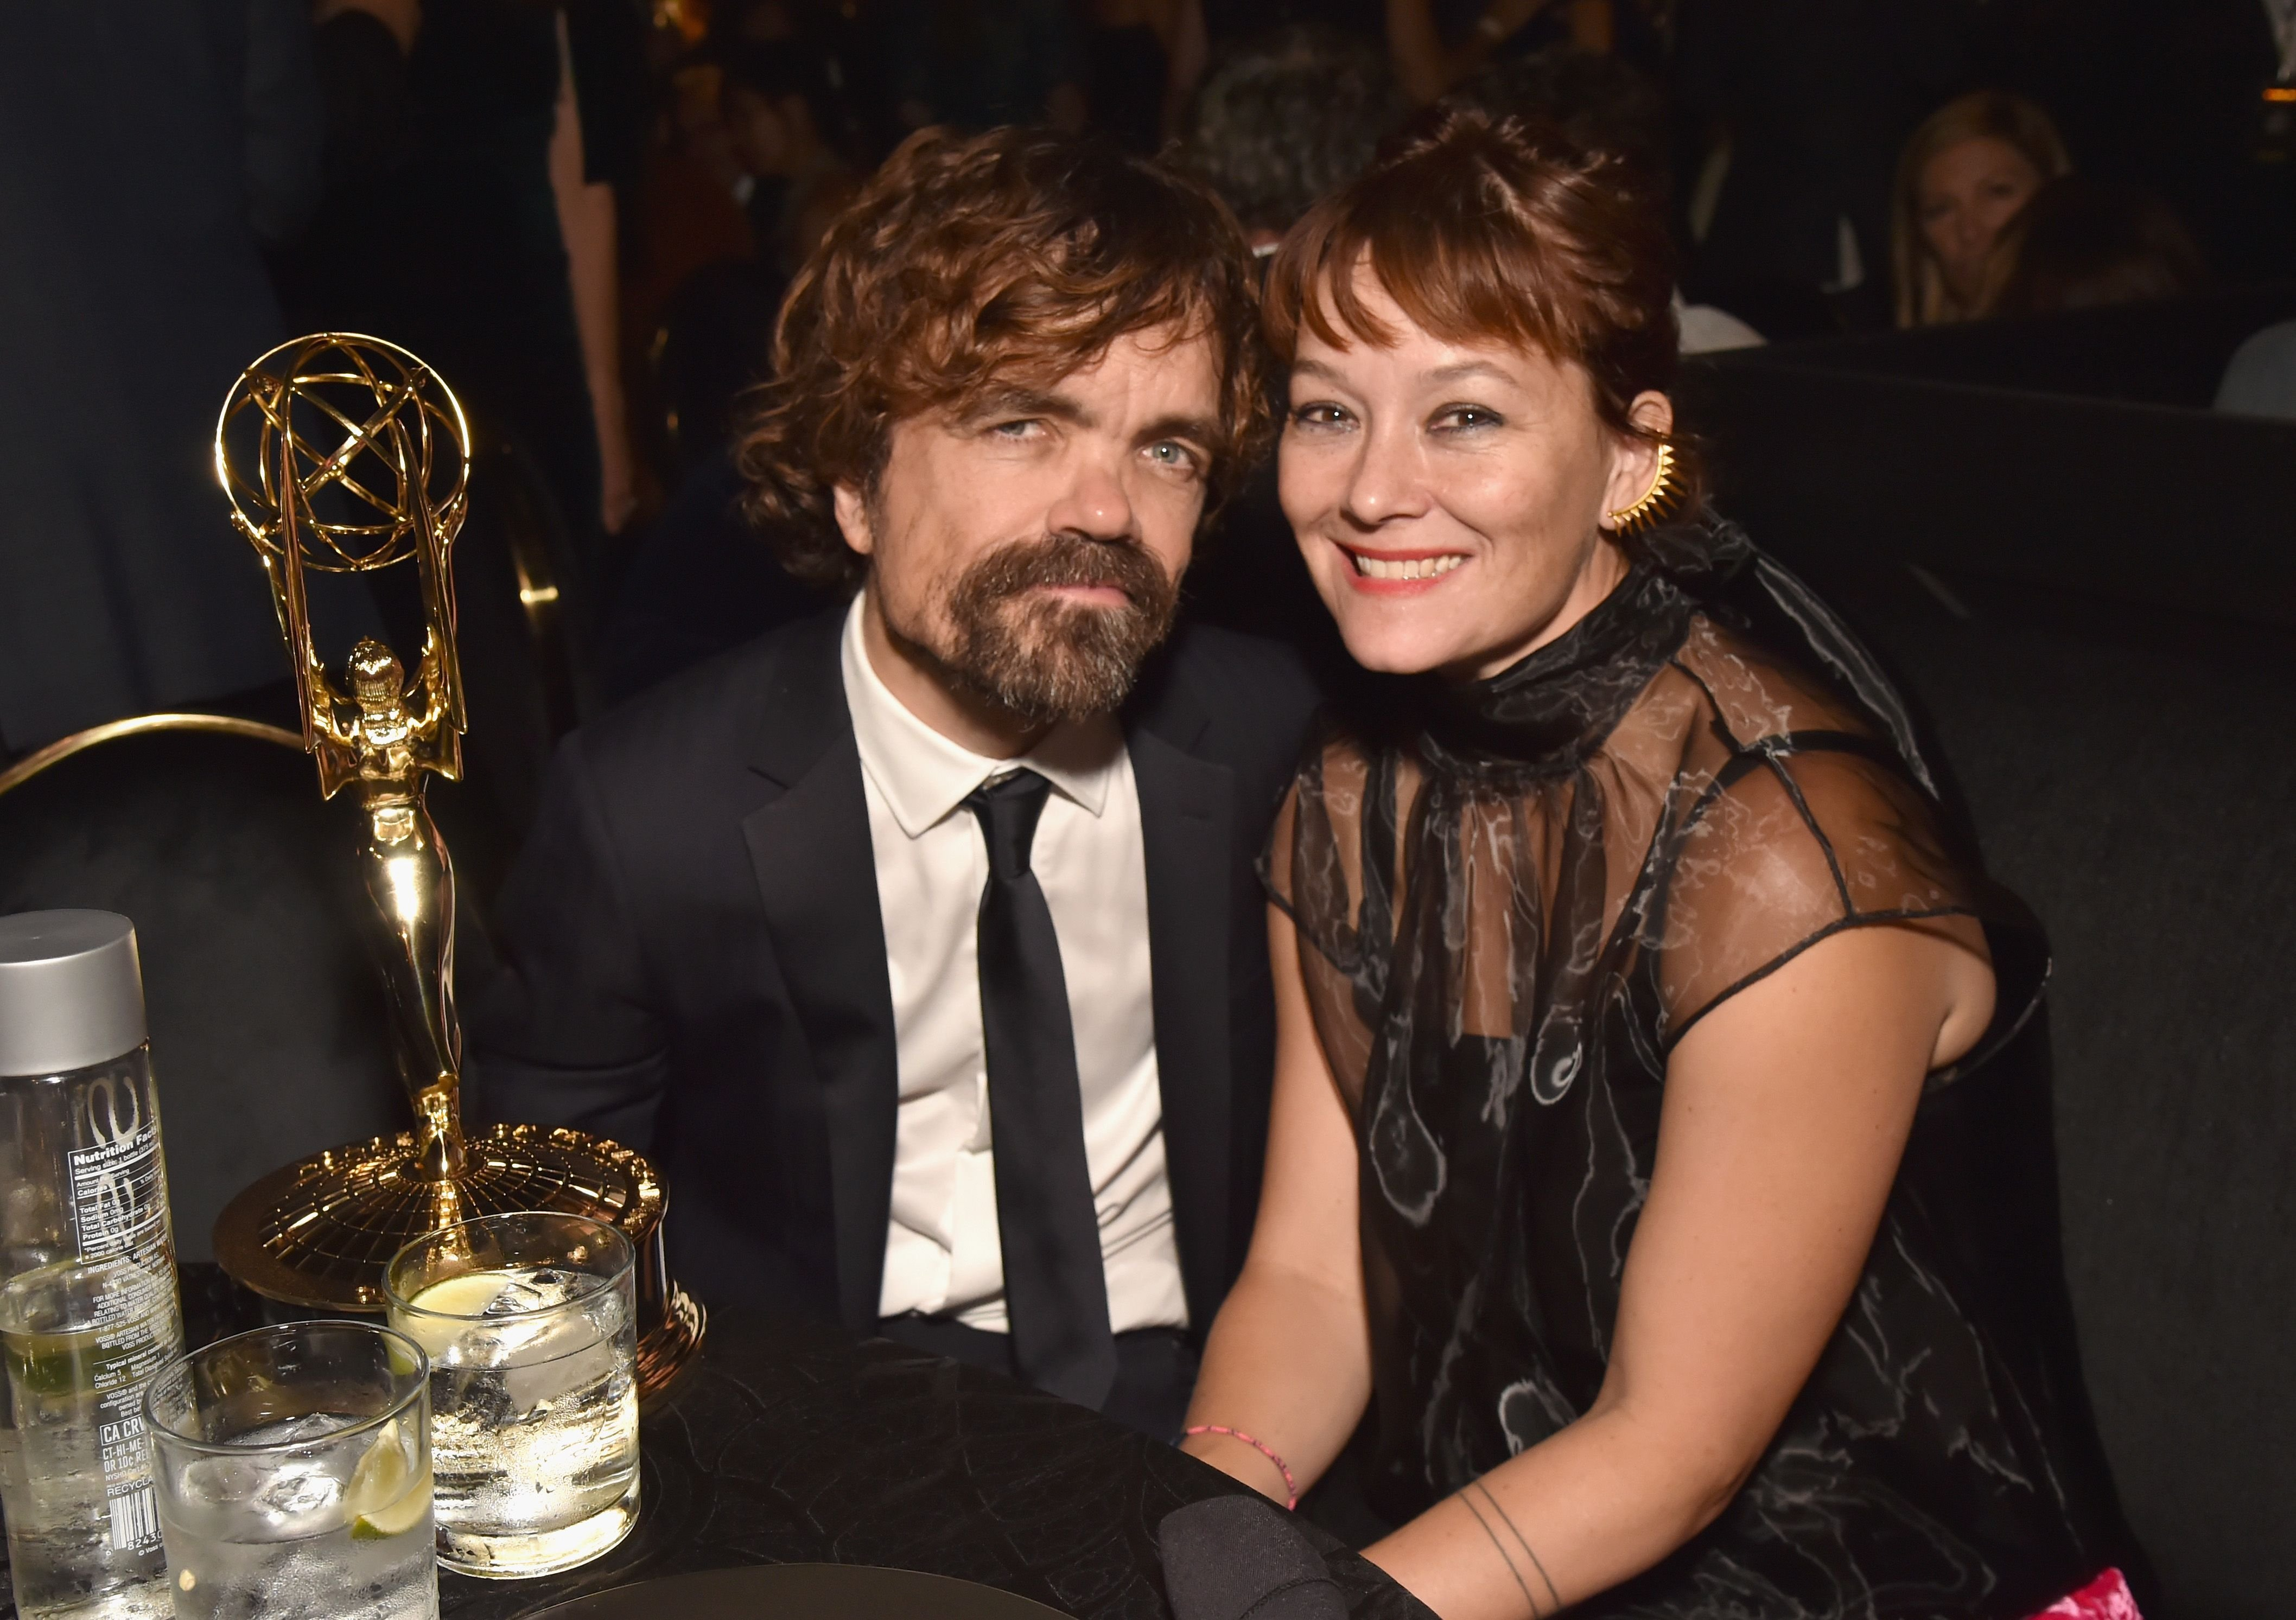 Peter Dinklage and Erica Schmidt at THE HBO Official 2018 Emmy After Party in Los Angeles, California | Source: Getty Images